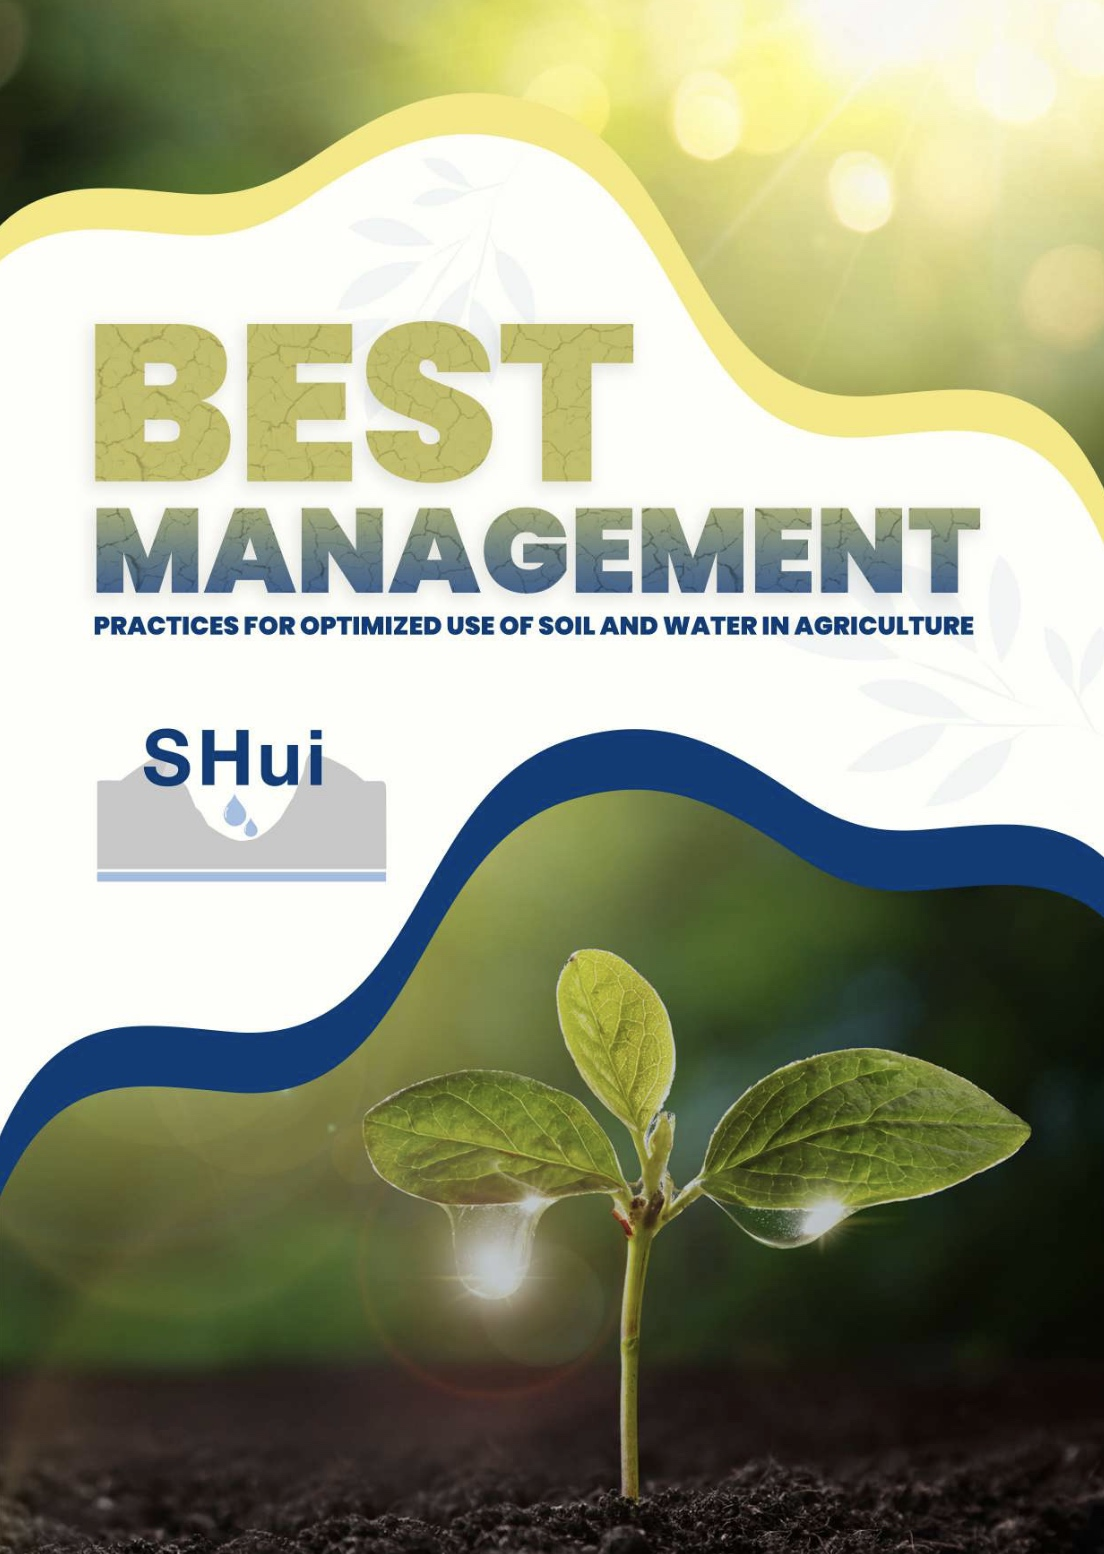 Best management practices for optimized use of soil and water in agriculture